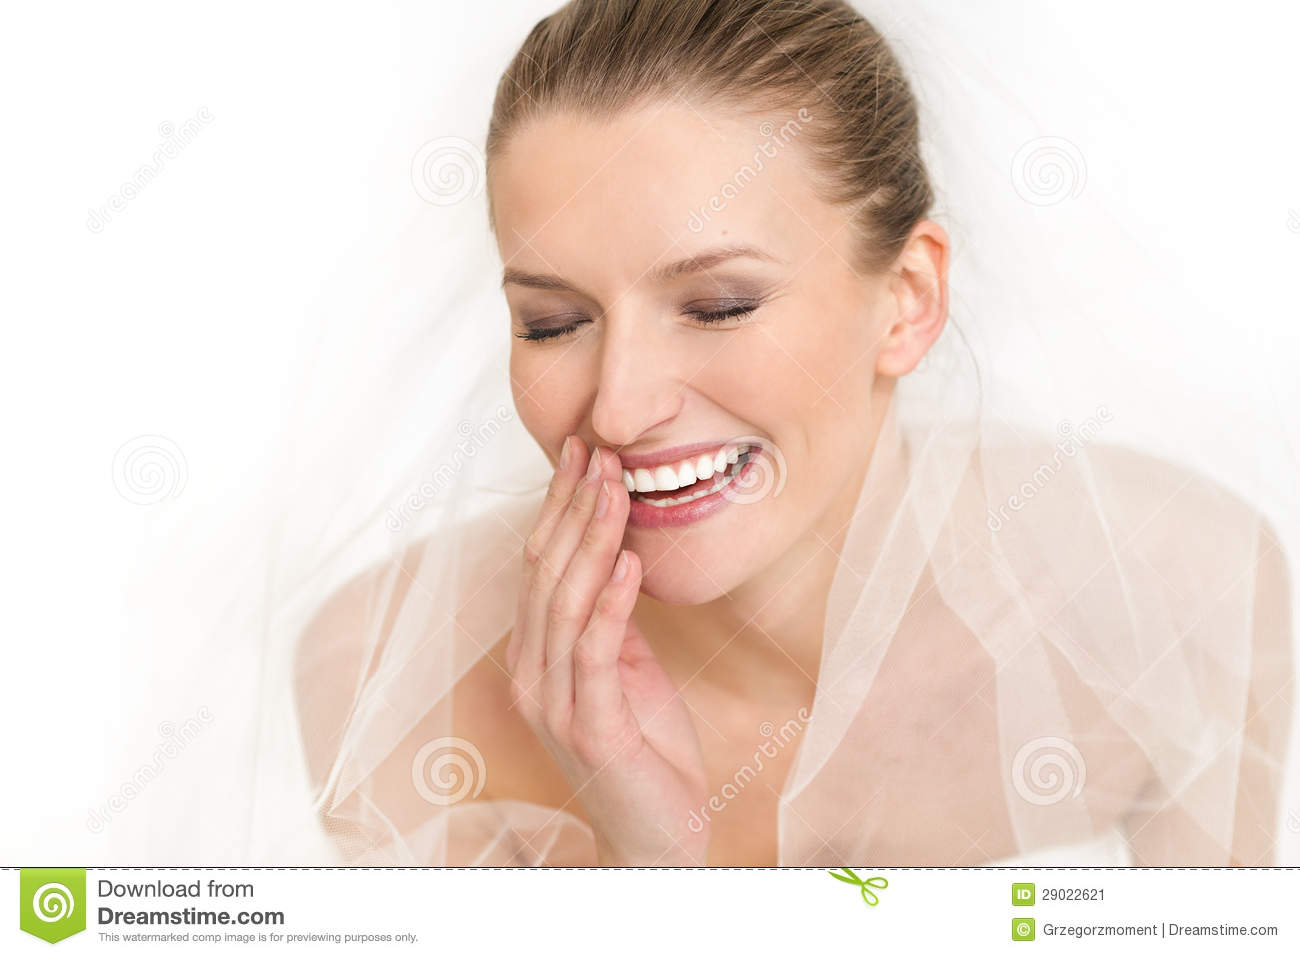 Portrait of beautiful bride wedding dress and veil she is smiling and